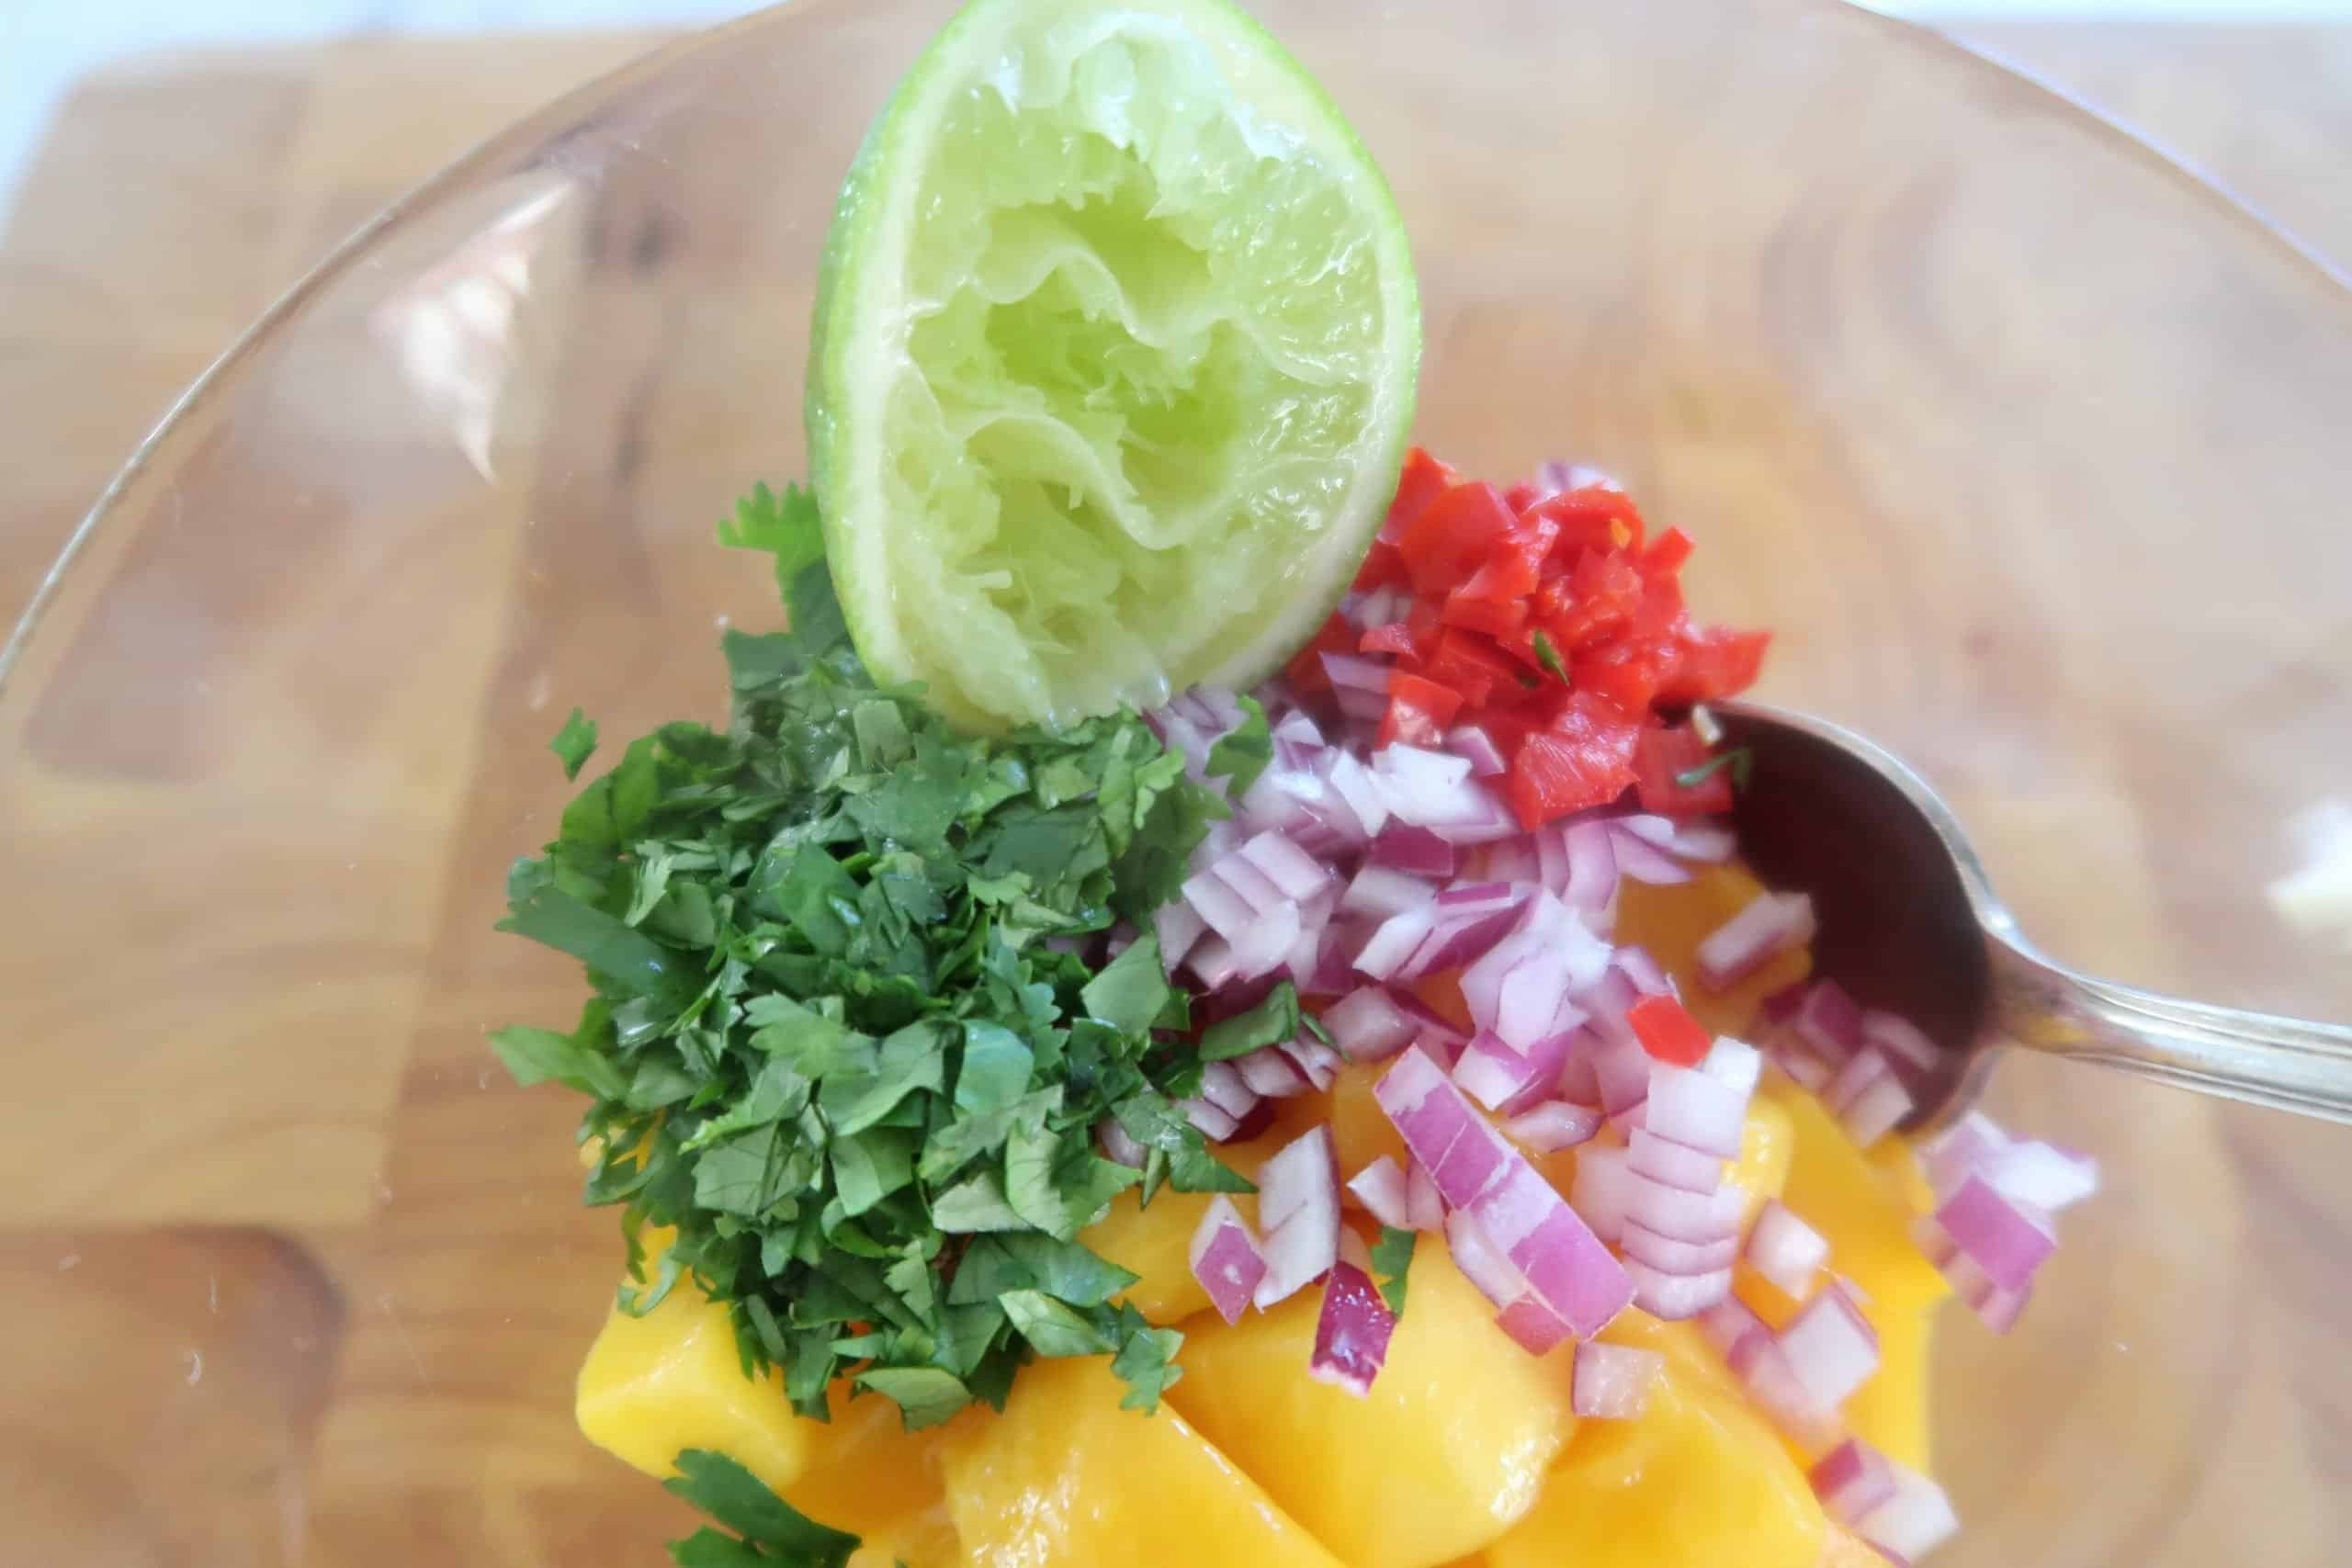 Mexican prawn, mango and avocado salad ingredients in a glass bowl ready to mix